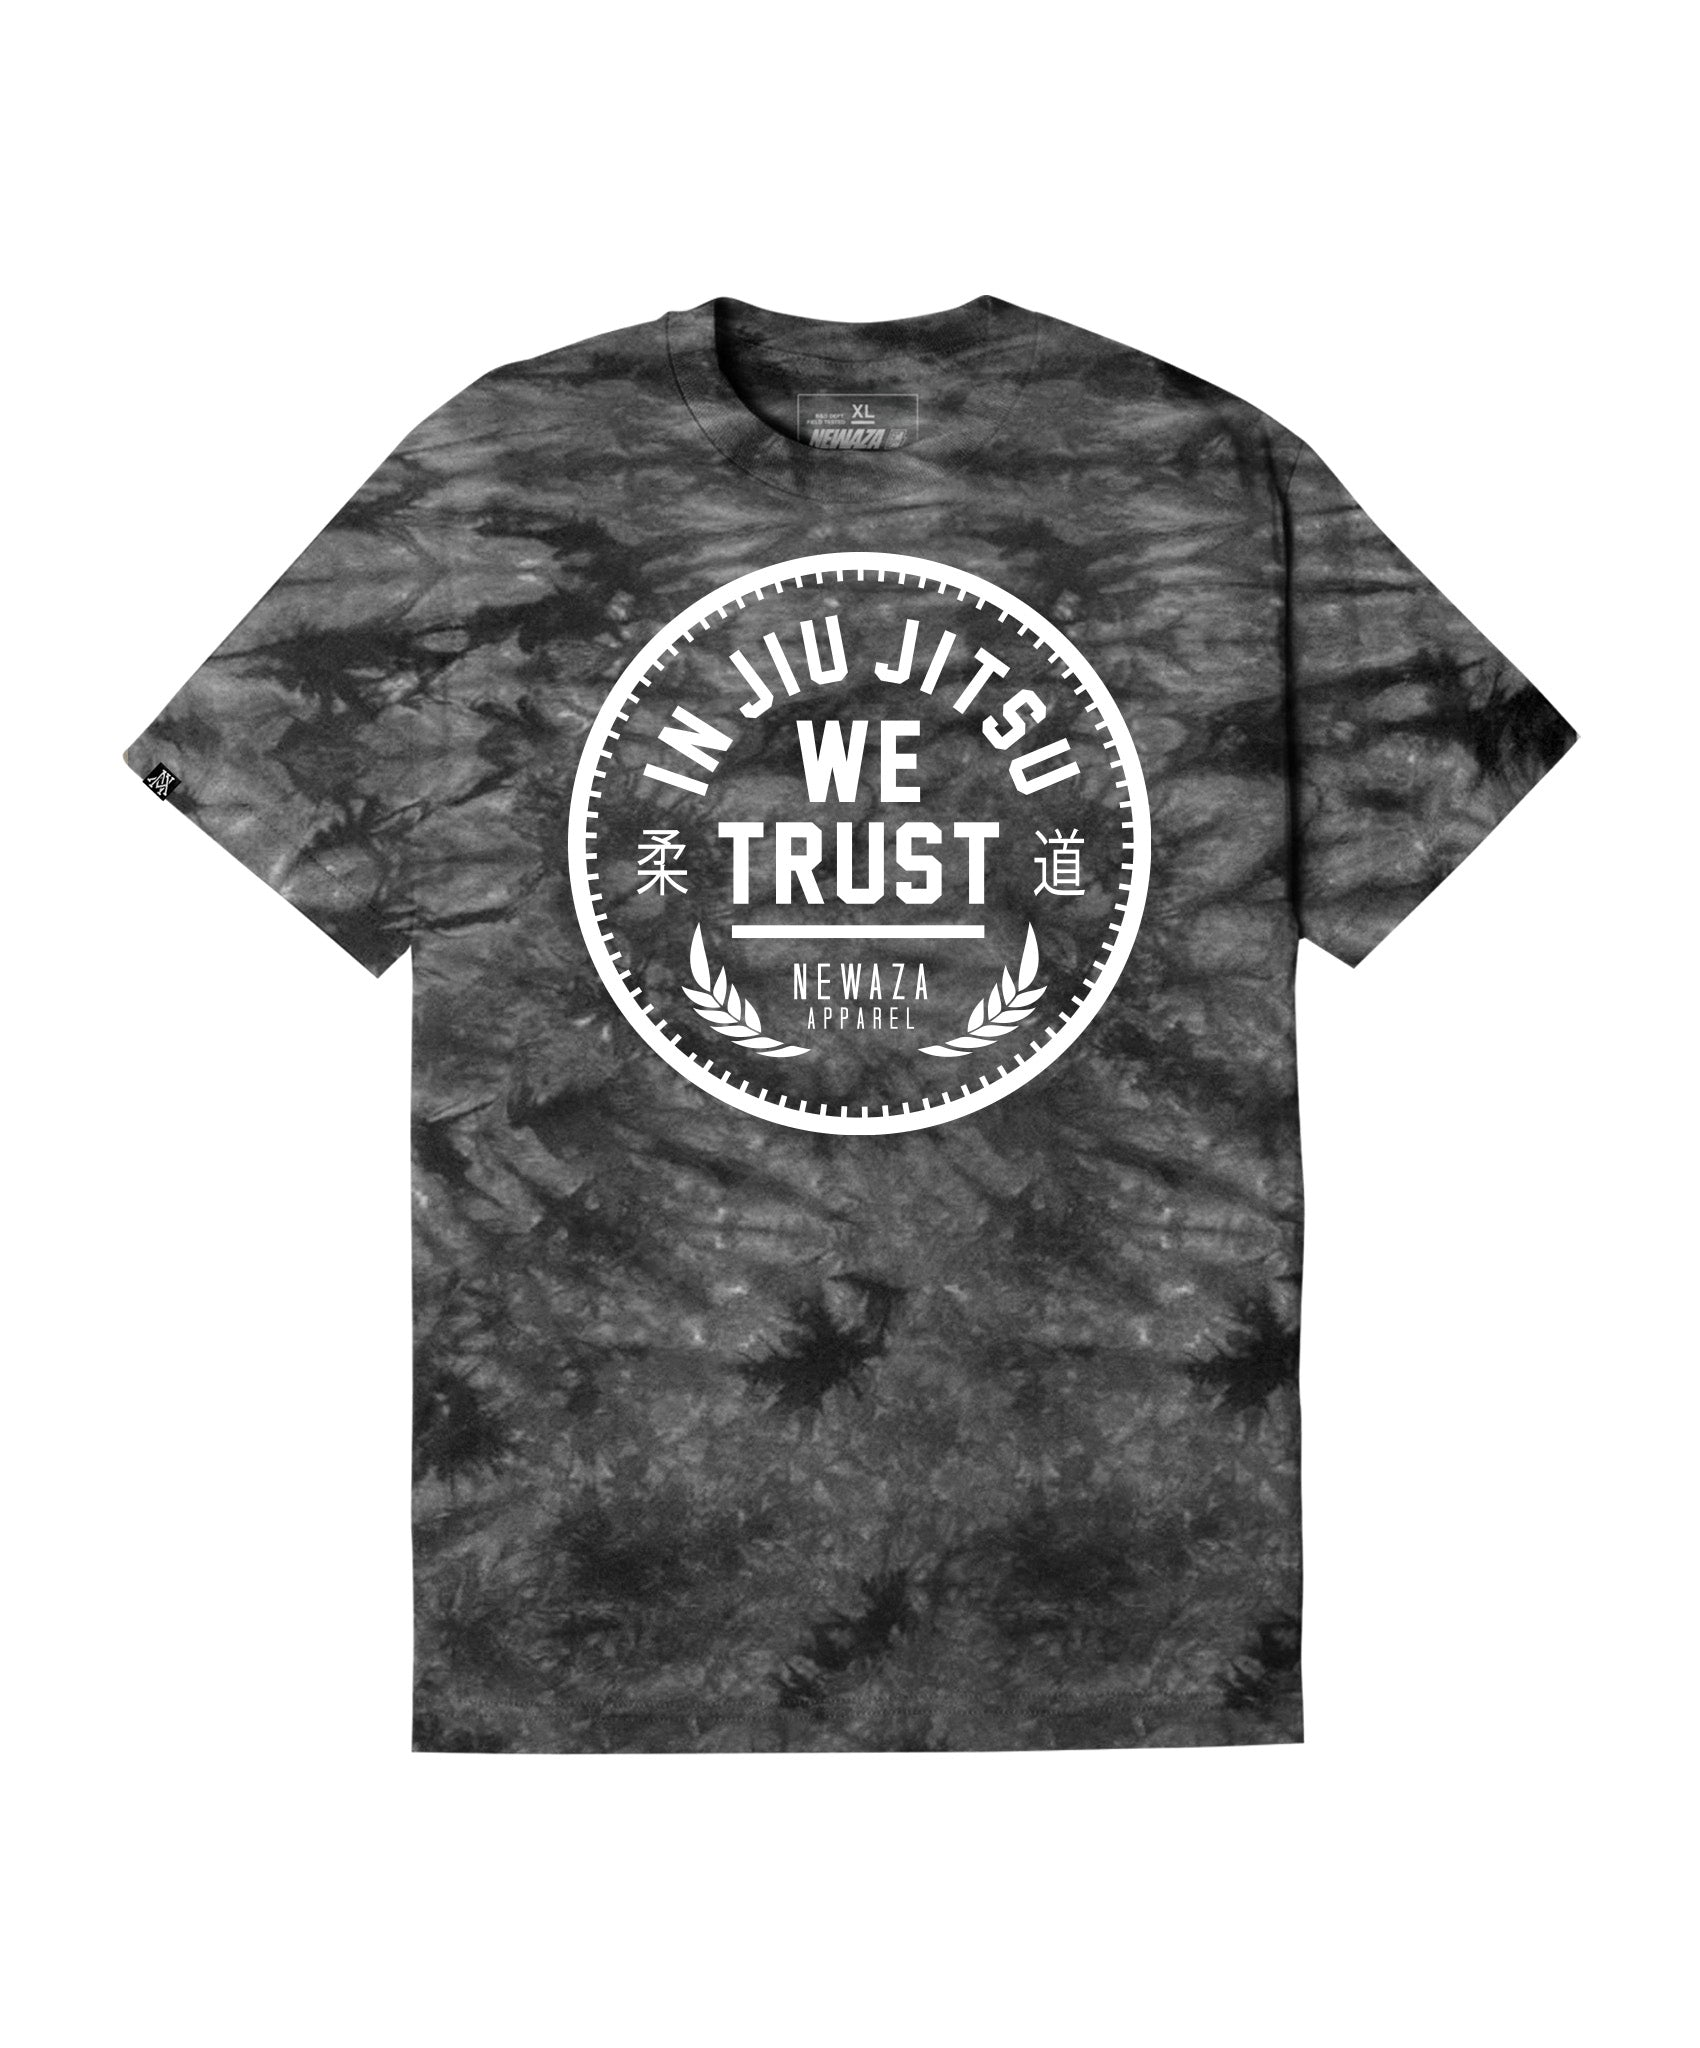 Dye In Jiu Jitsu We Trust Tee - Black